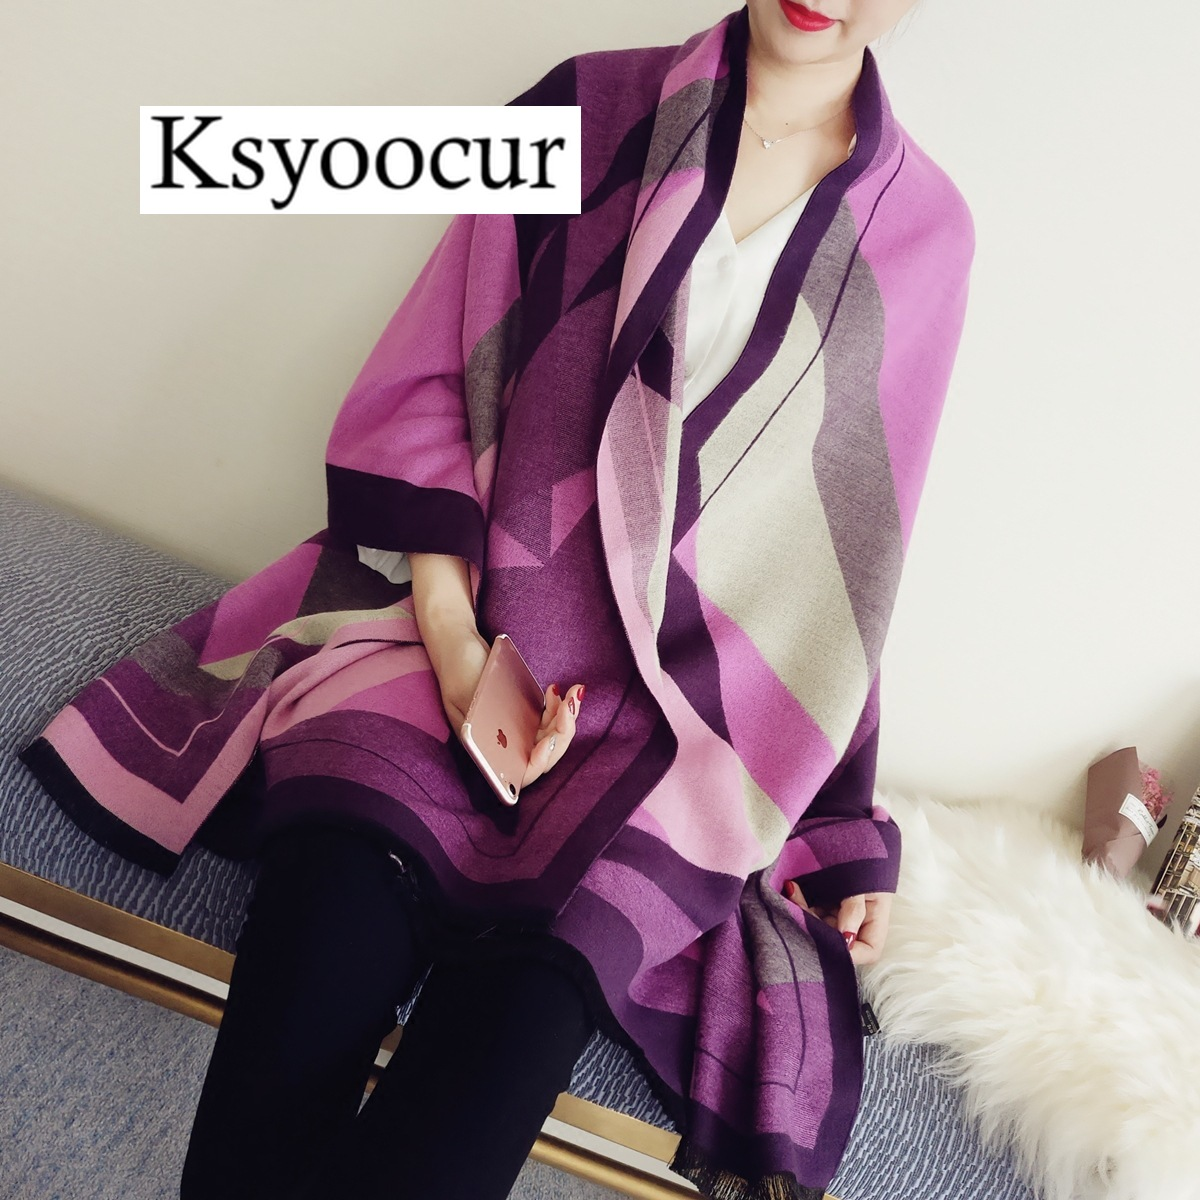 Size 200*70cm, 2020 New Autumn/Winter Long Section Cashmere Fashion Scarf Women Warm Shawls And Scarves Brand Ksyoocur E06